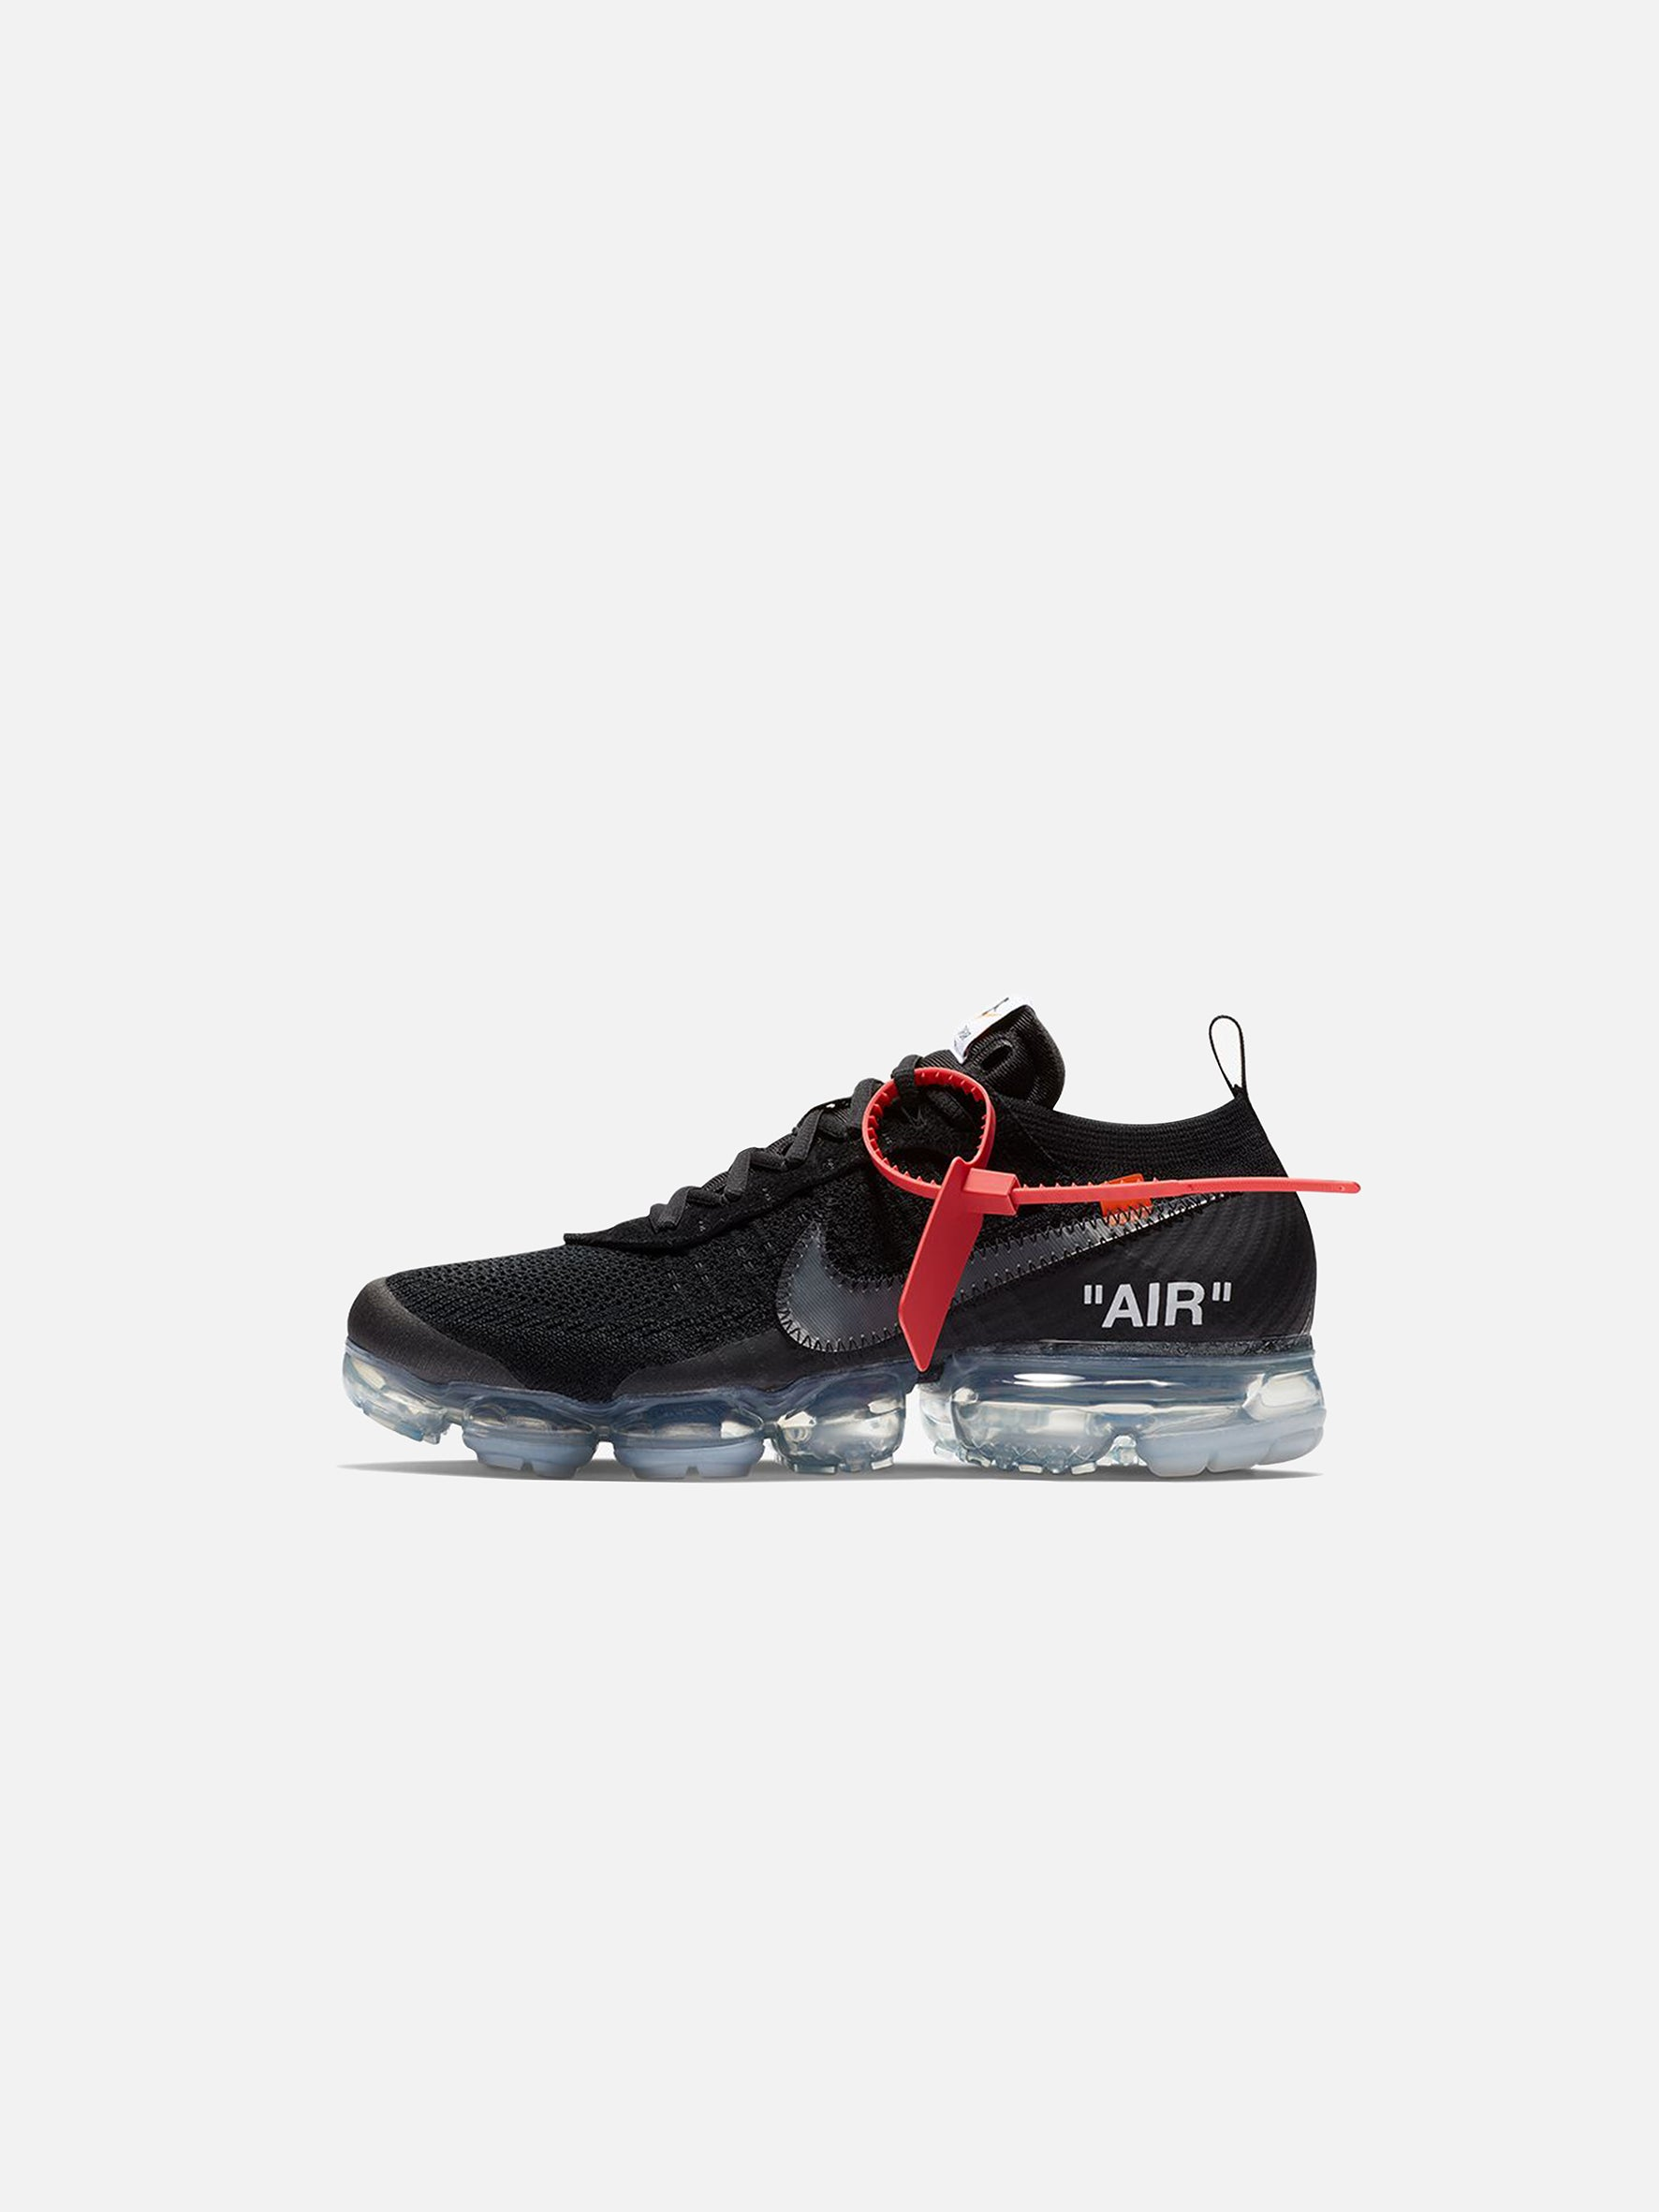 Nike x Off-White™ c/o Virgil Abloh Air Vapormax Black